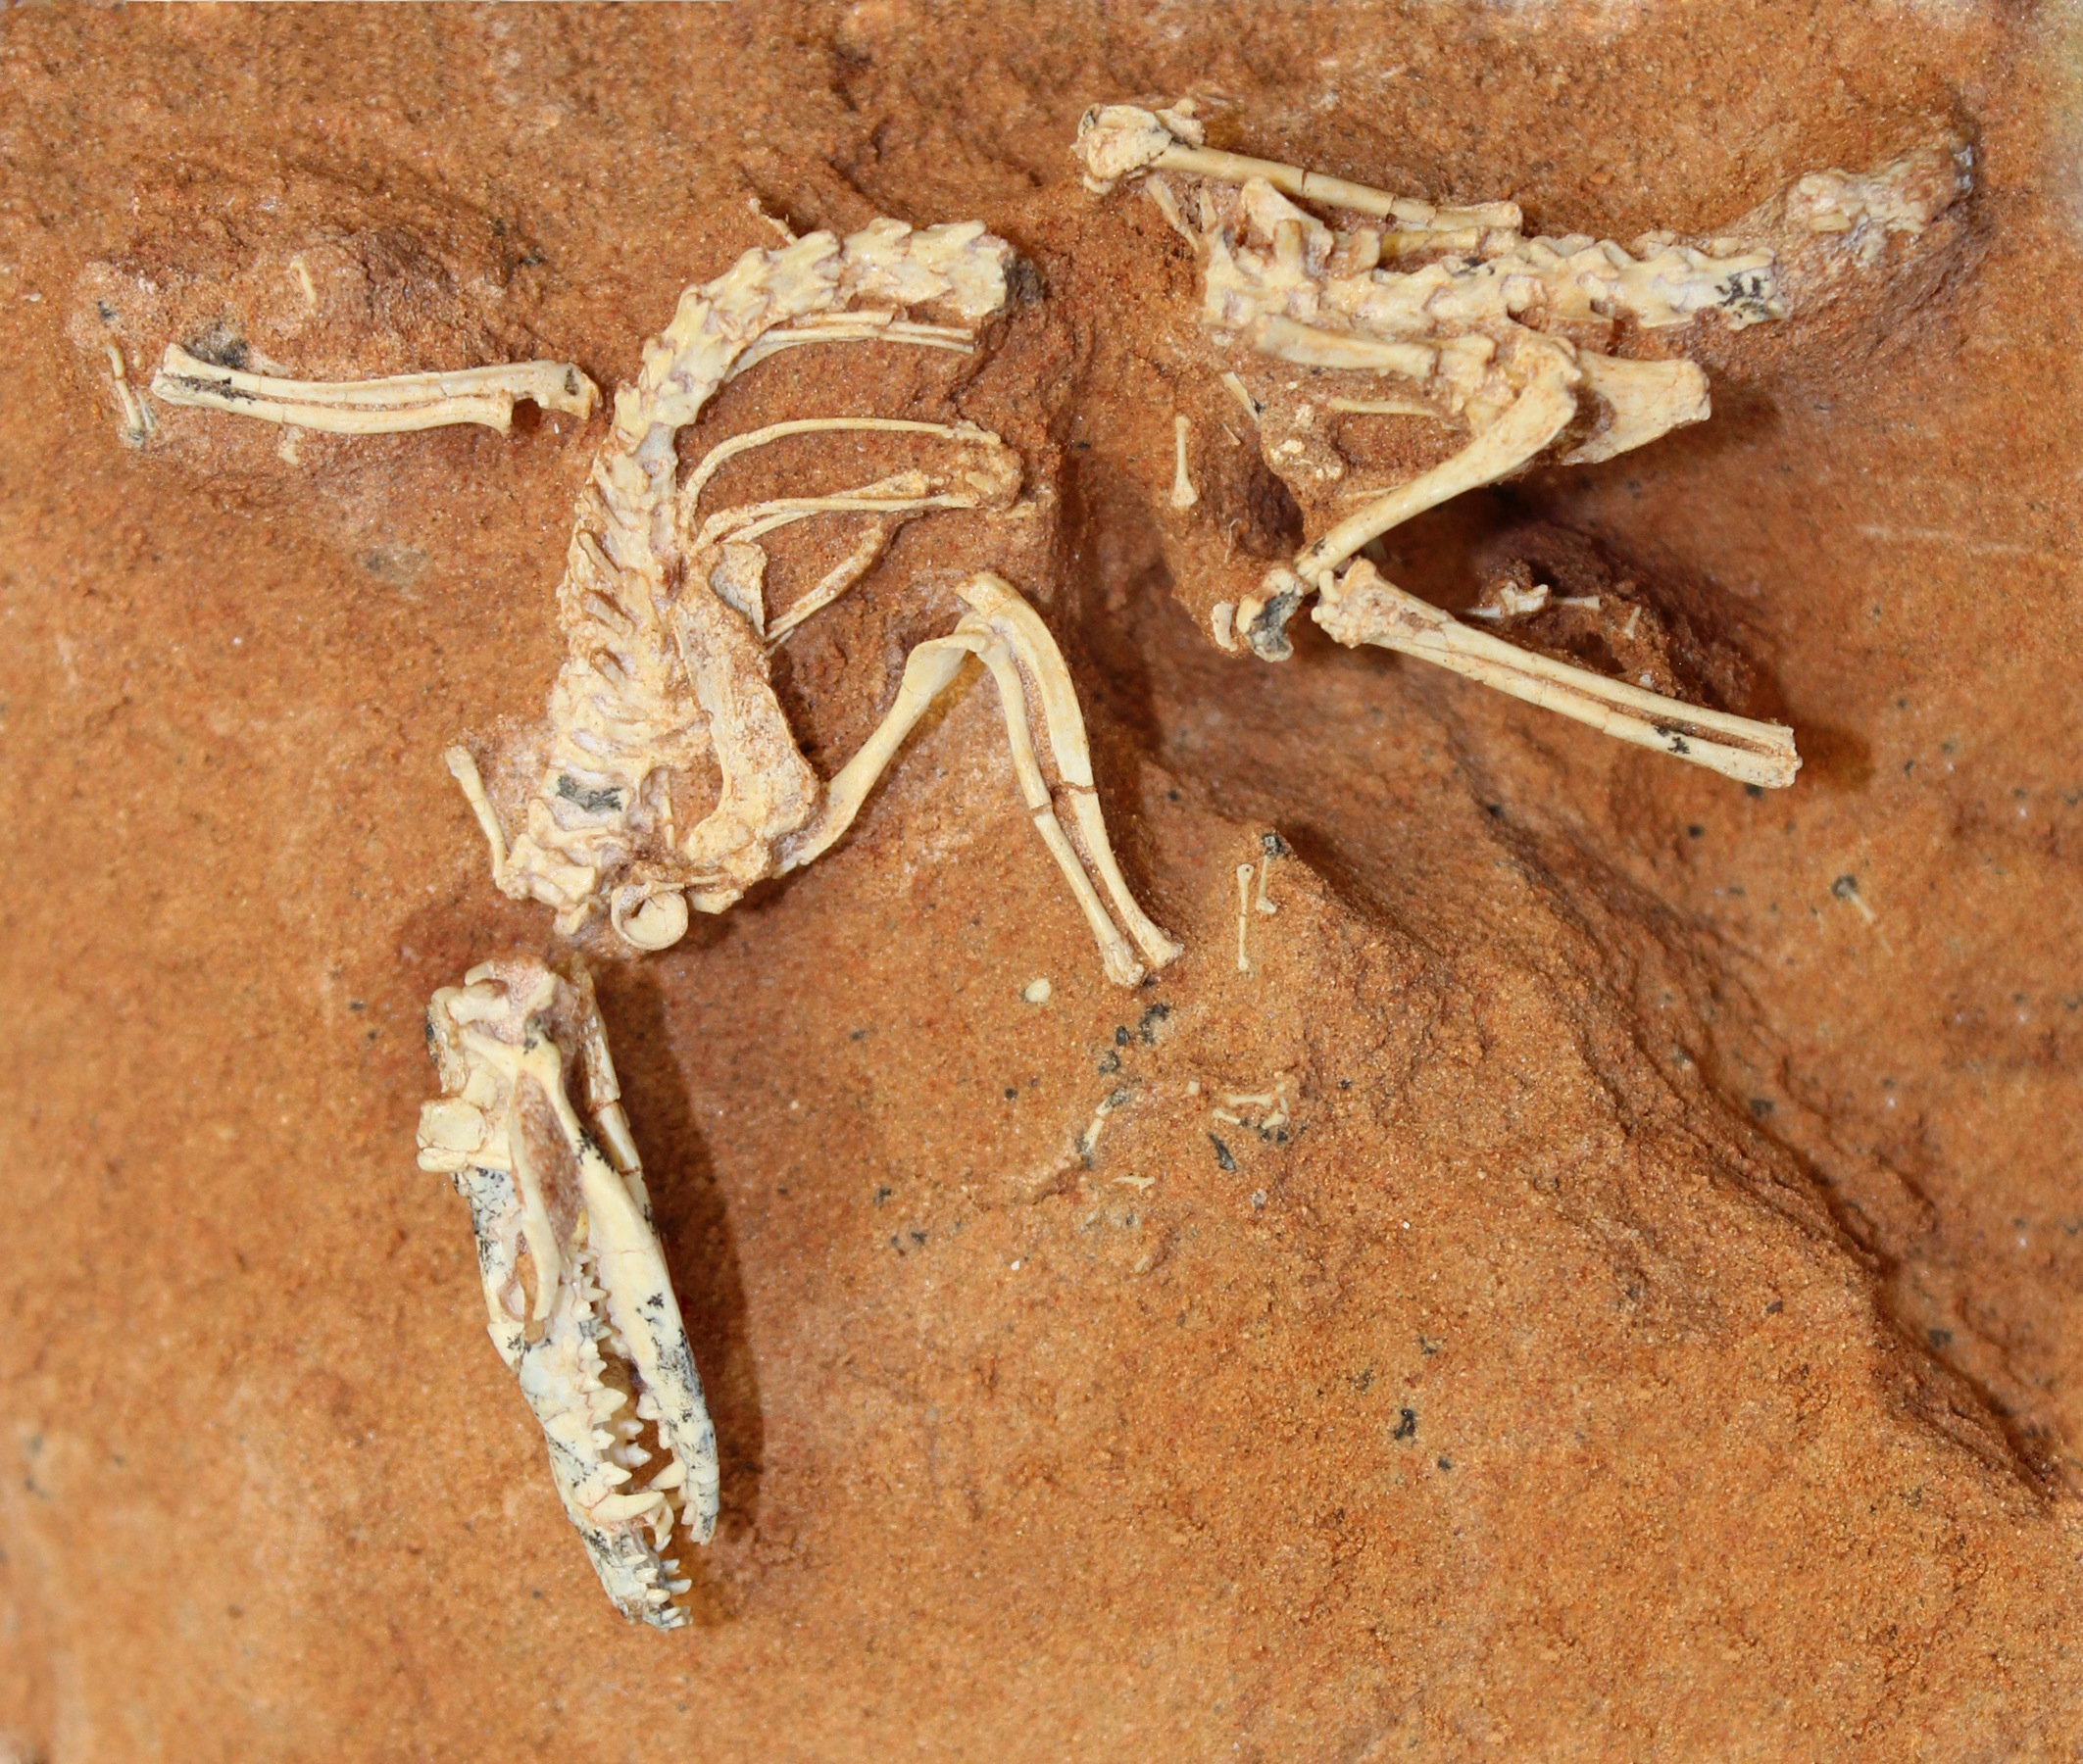 A mammal that dates to the Cretaceous and has a mix of marsupial and placental traits.